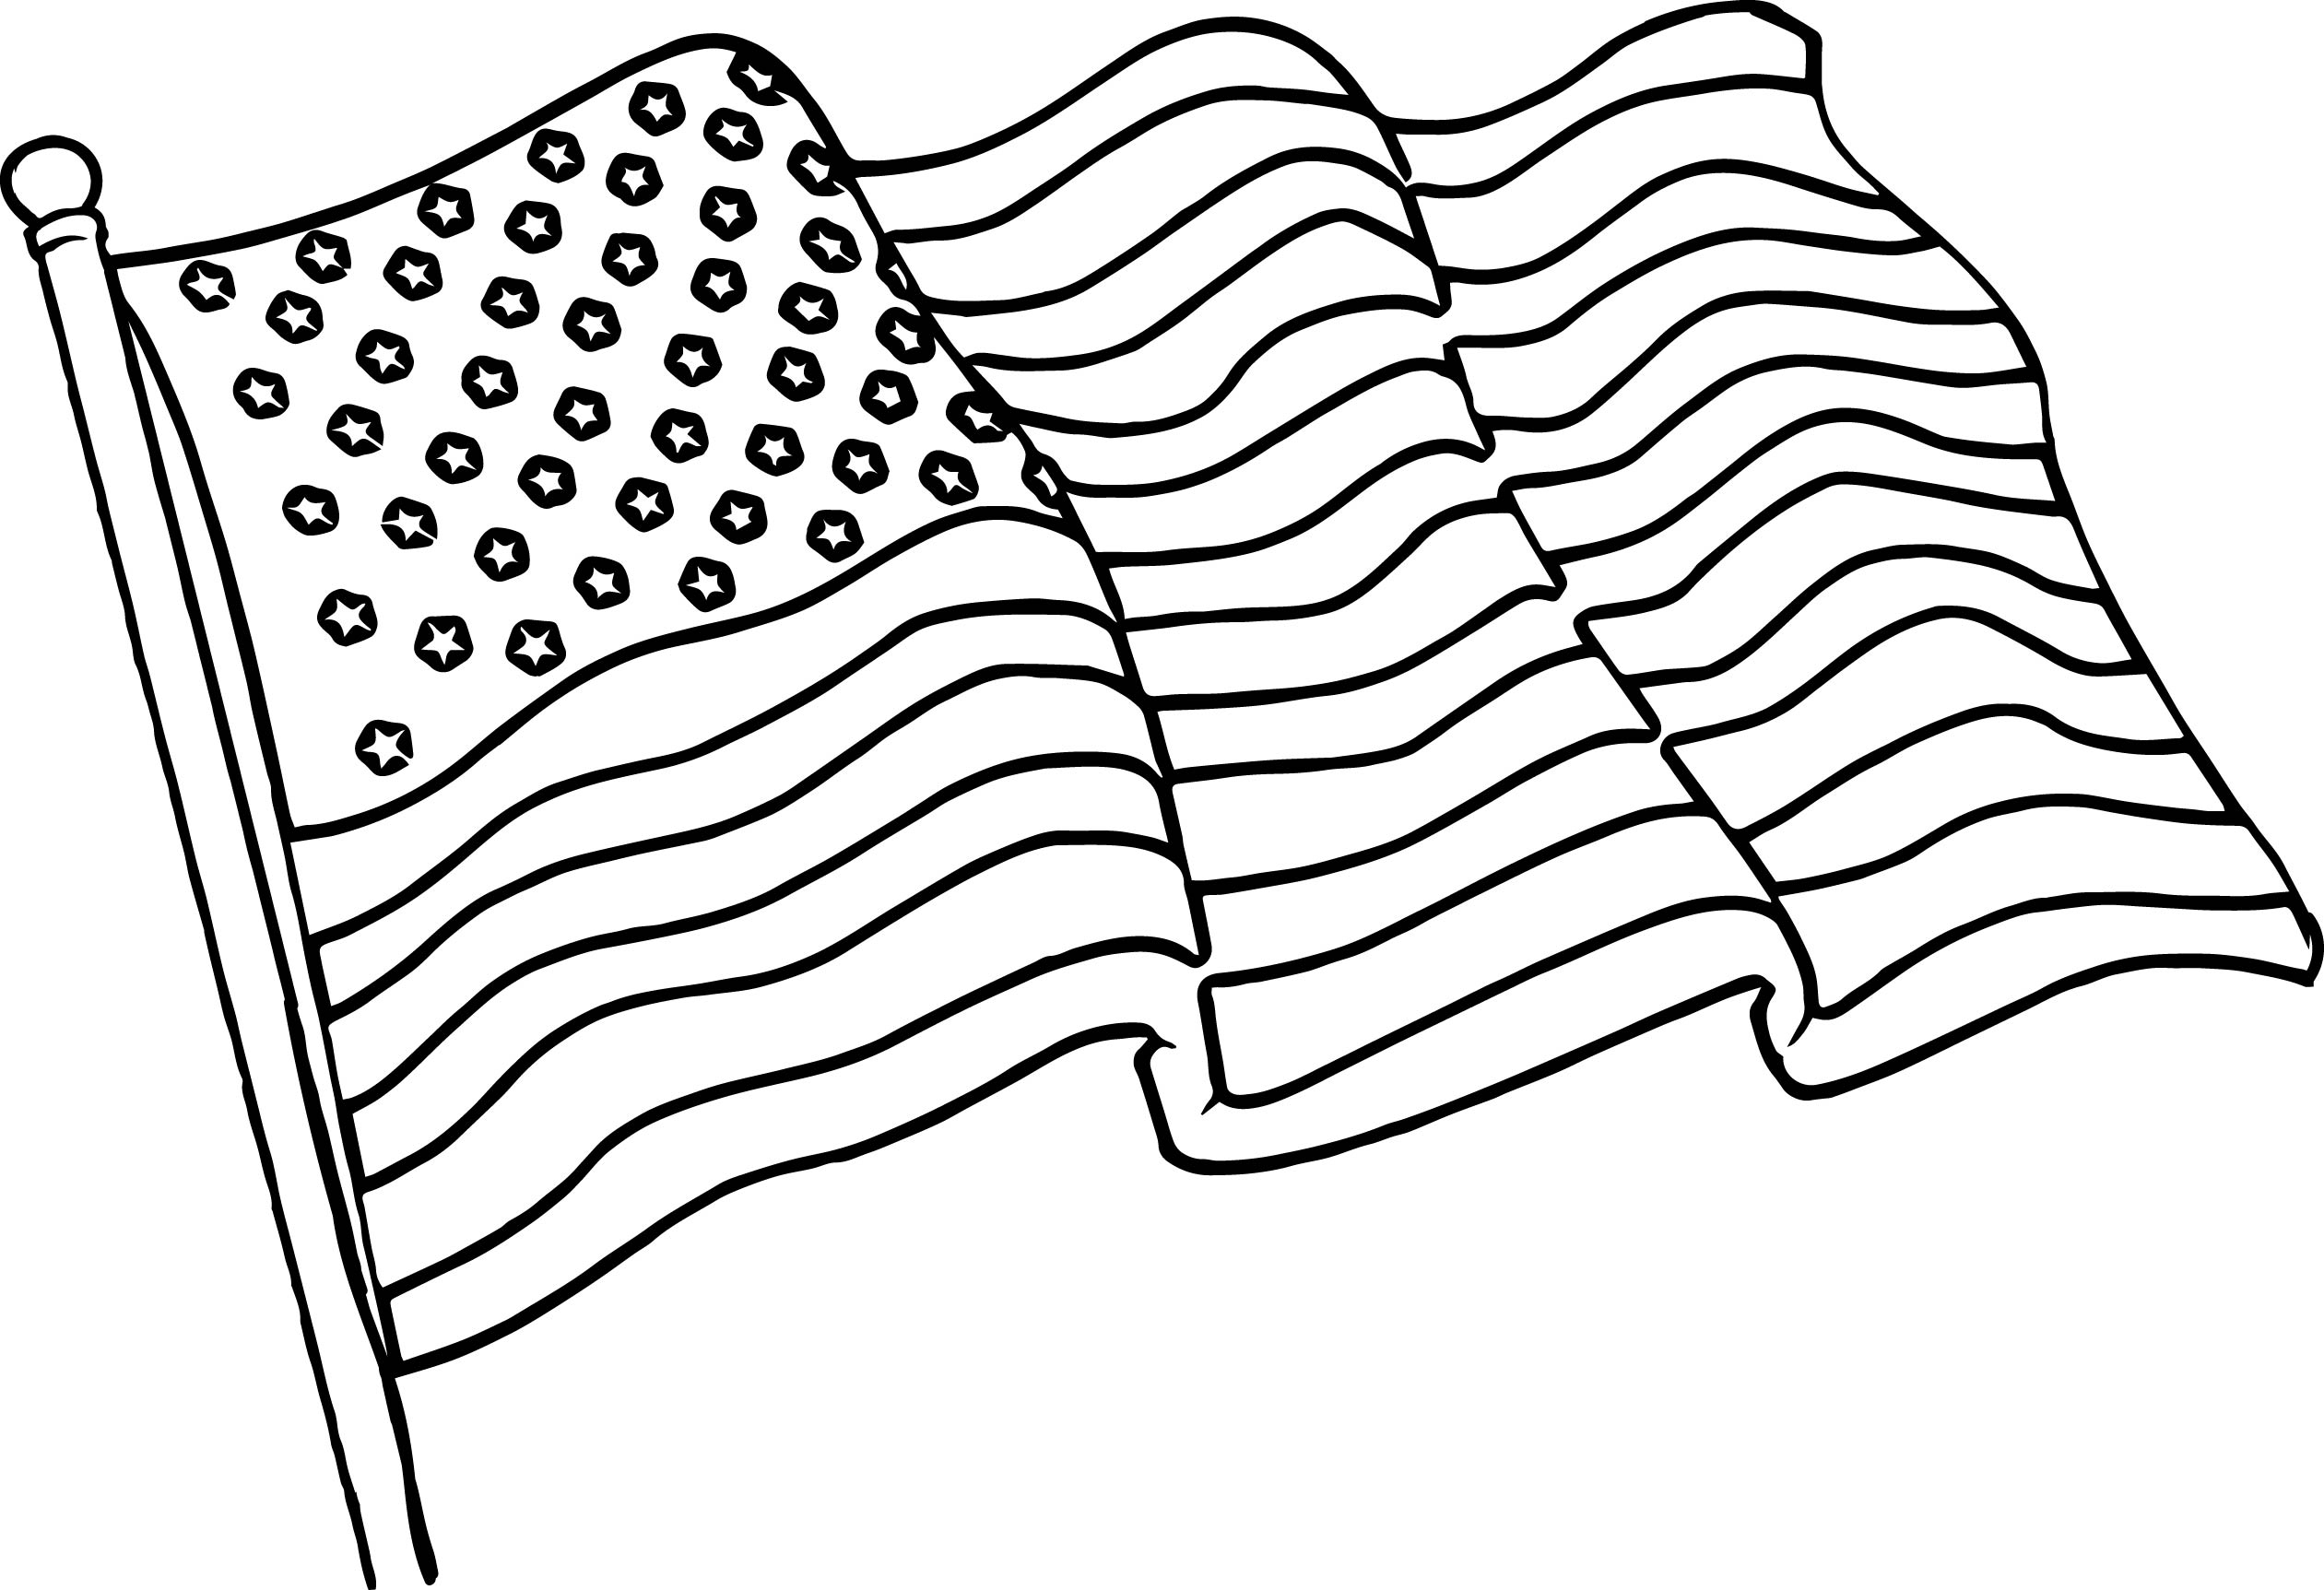 us flag coloring page american flag coloring pages best coloring pages for kids us flag coloring page